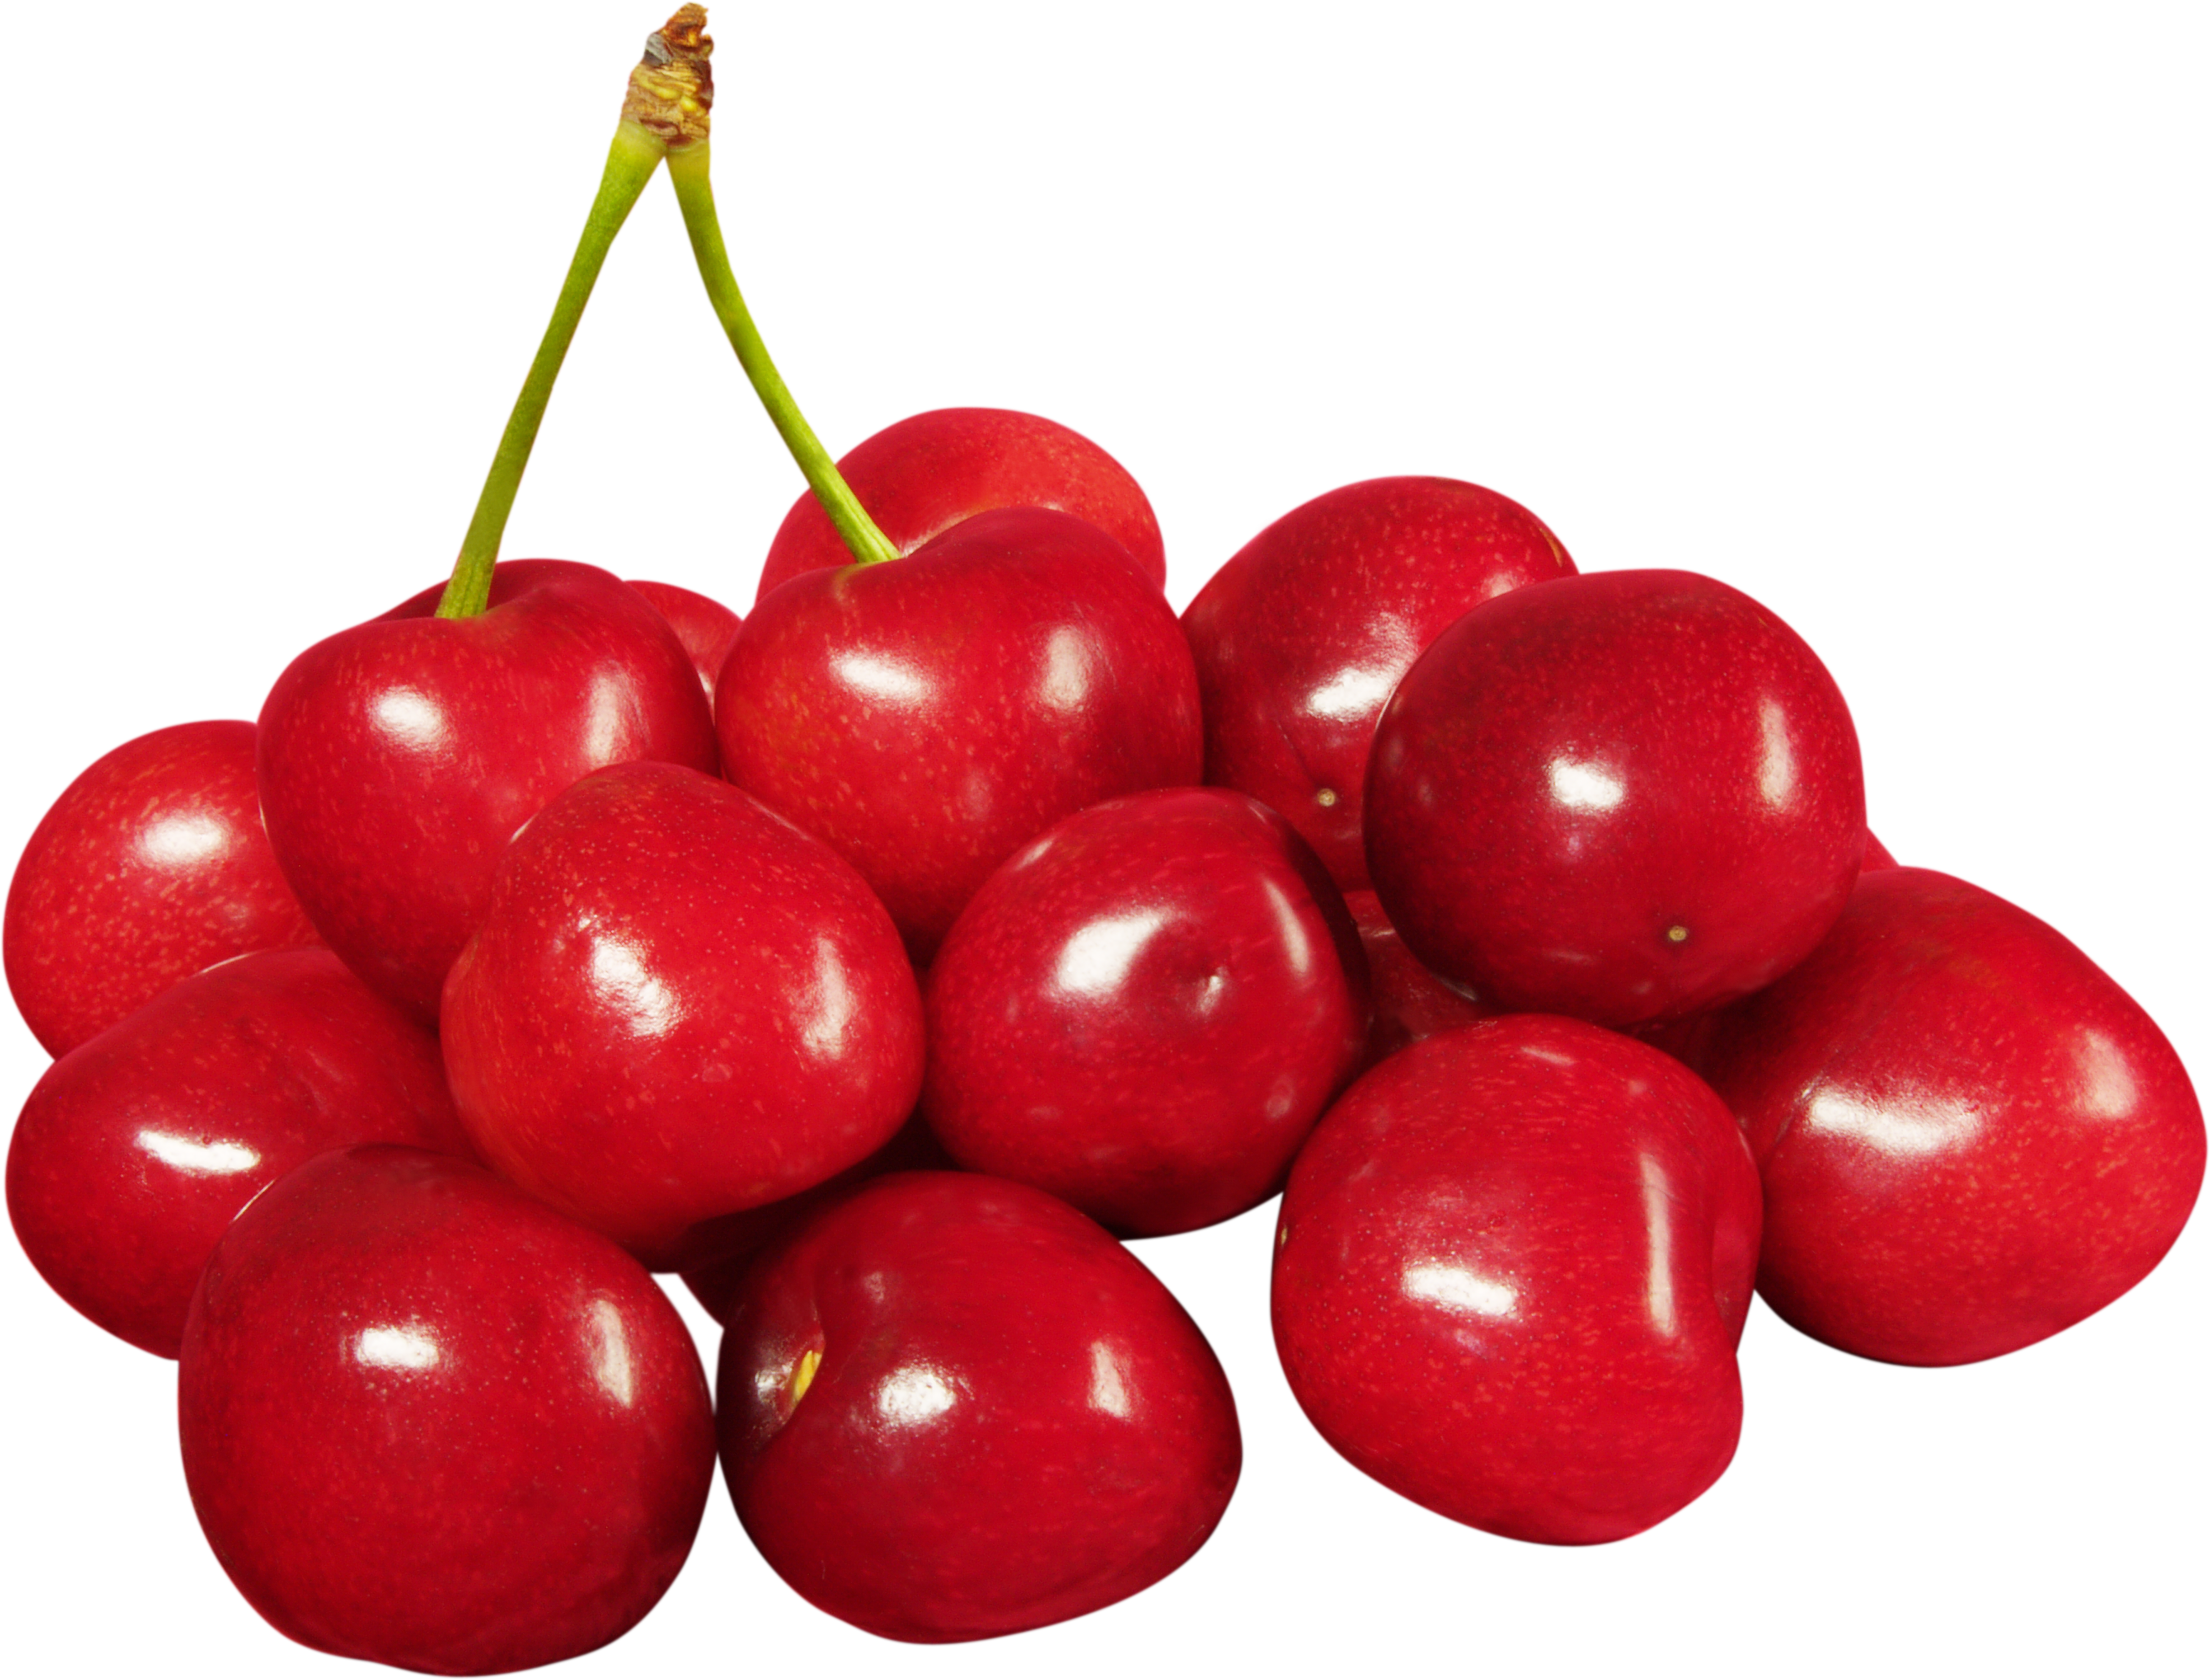 Cherry PNG - 26336